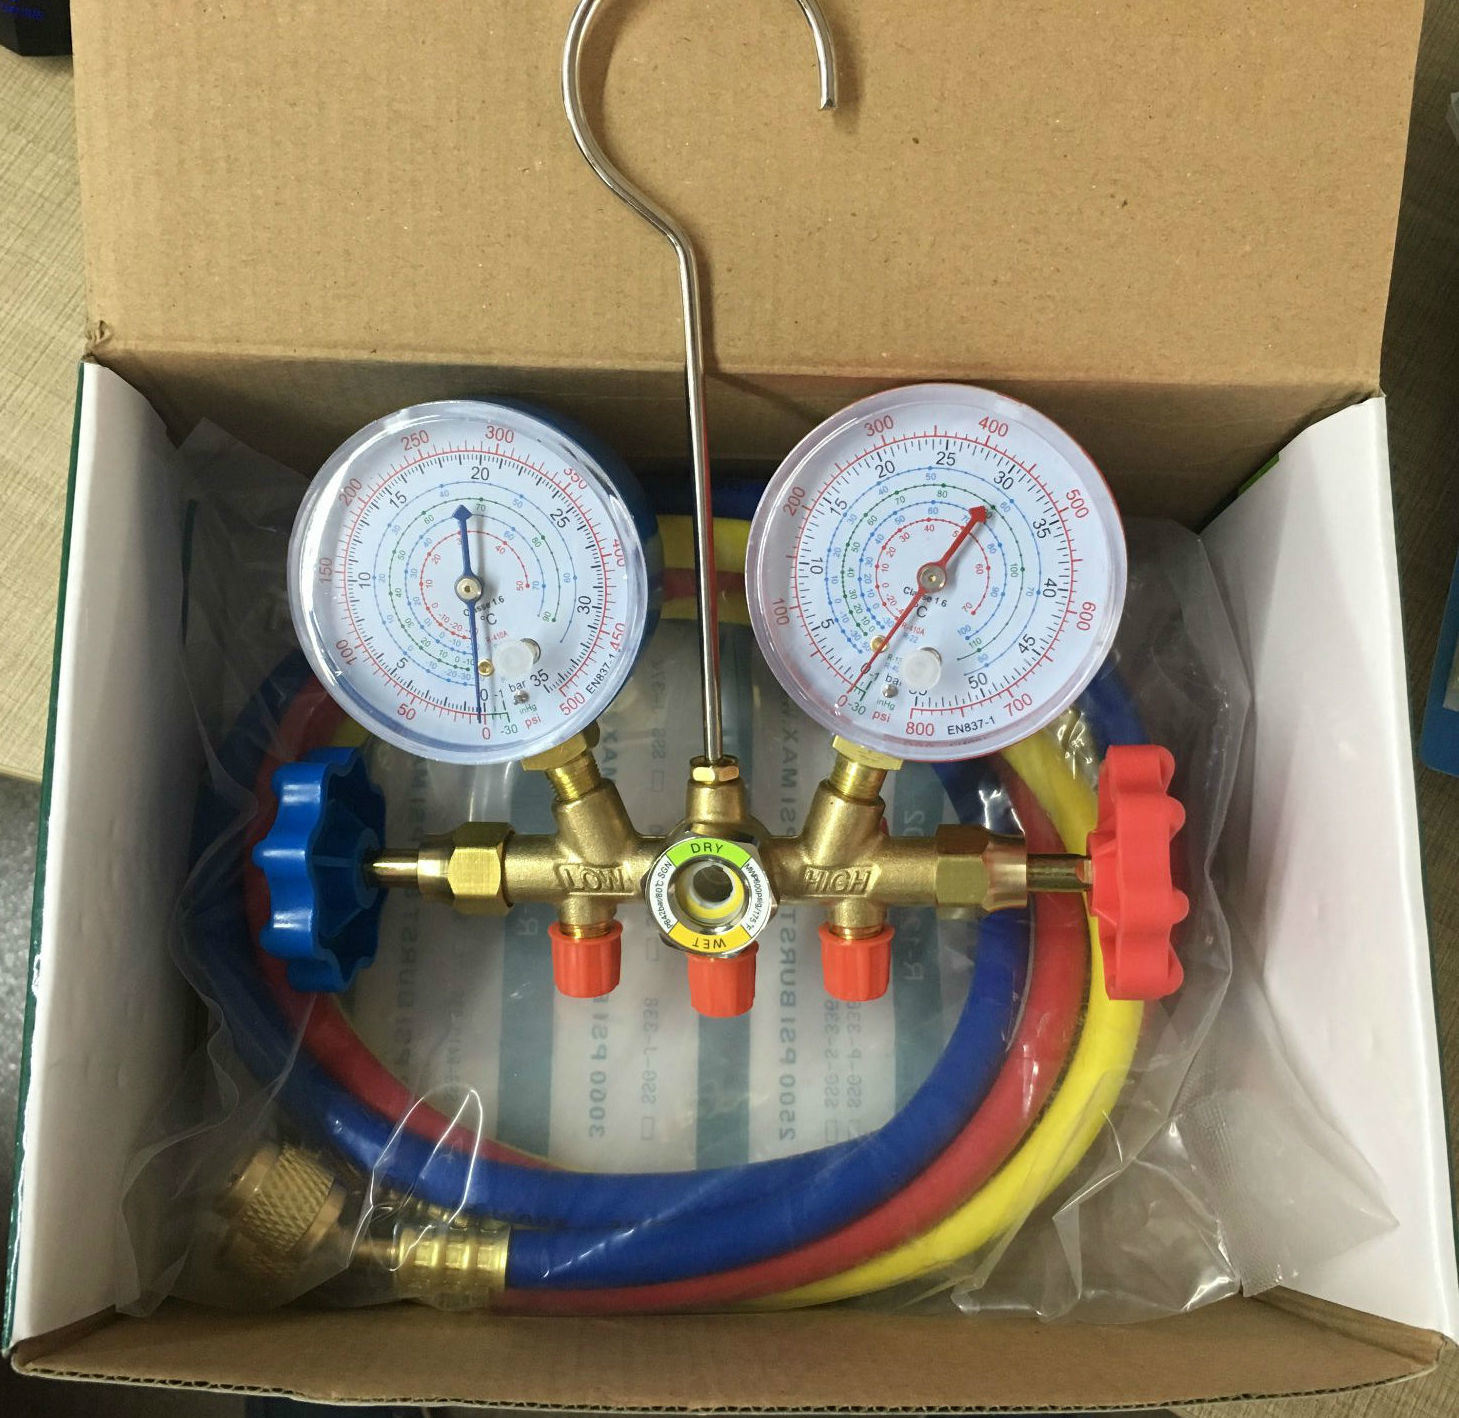 Car and Air Conditioner Refrigerant Charing Manifold Gauge